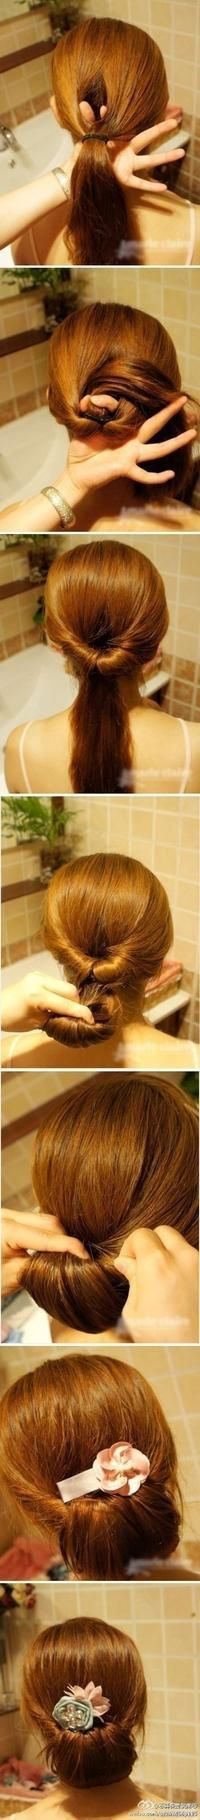 Attempting this for school tomorrow, it looks like such an easy and cute hairstyle to do I love it.